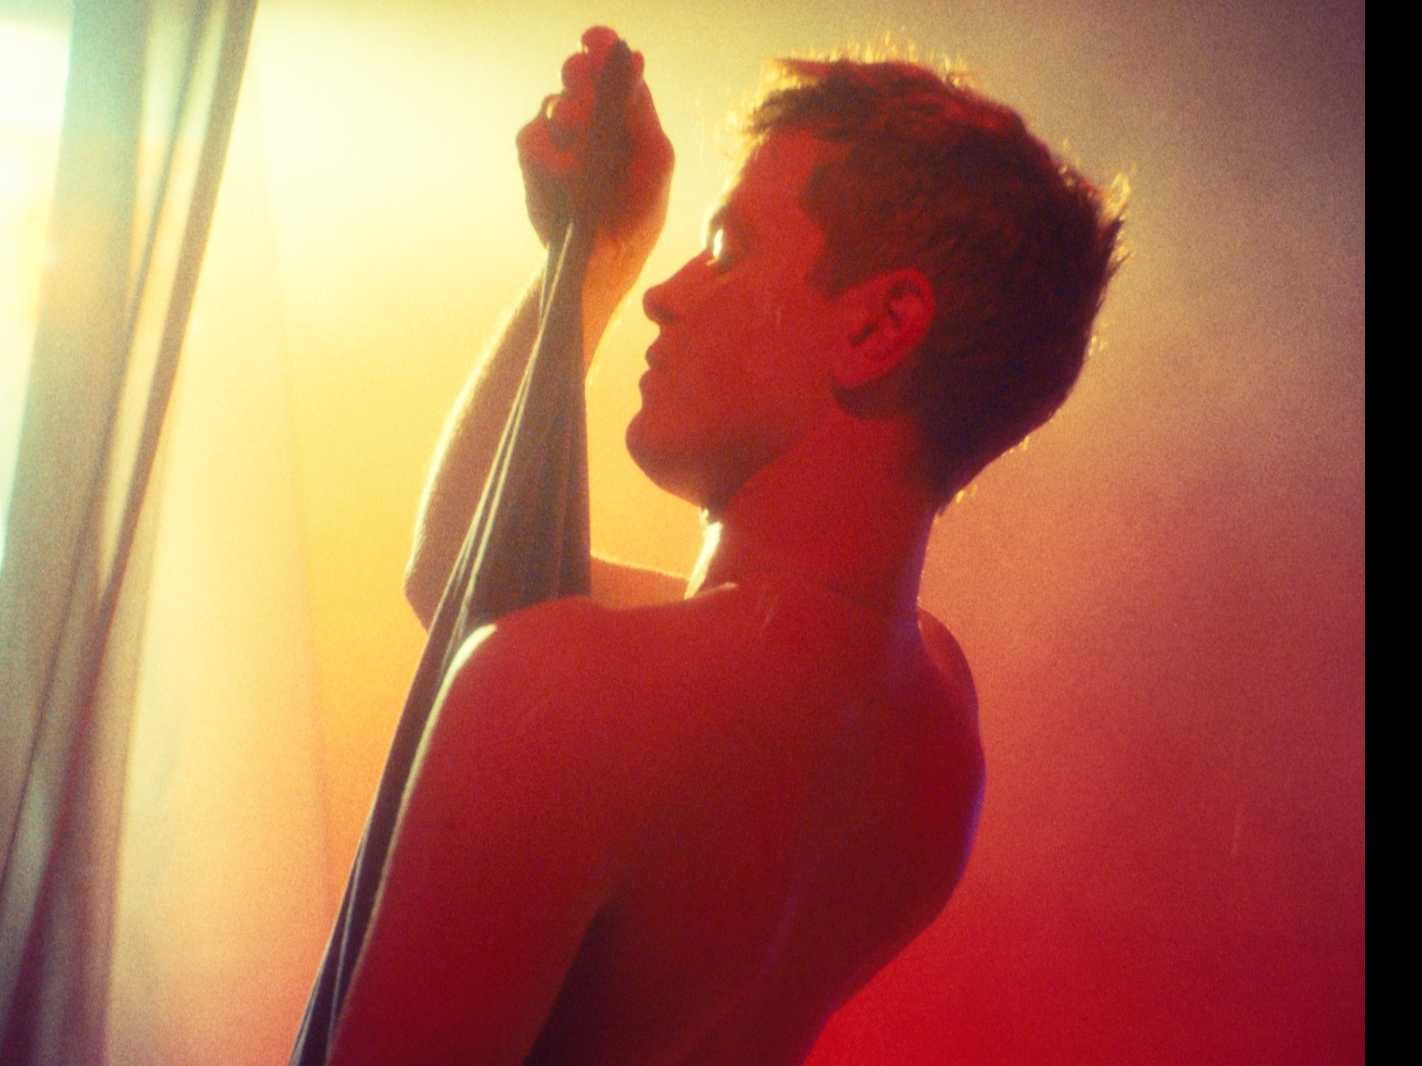 W Hotels Partners with Perfume Genius for LGBTQ Immigrant Rights